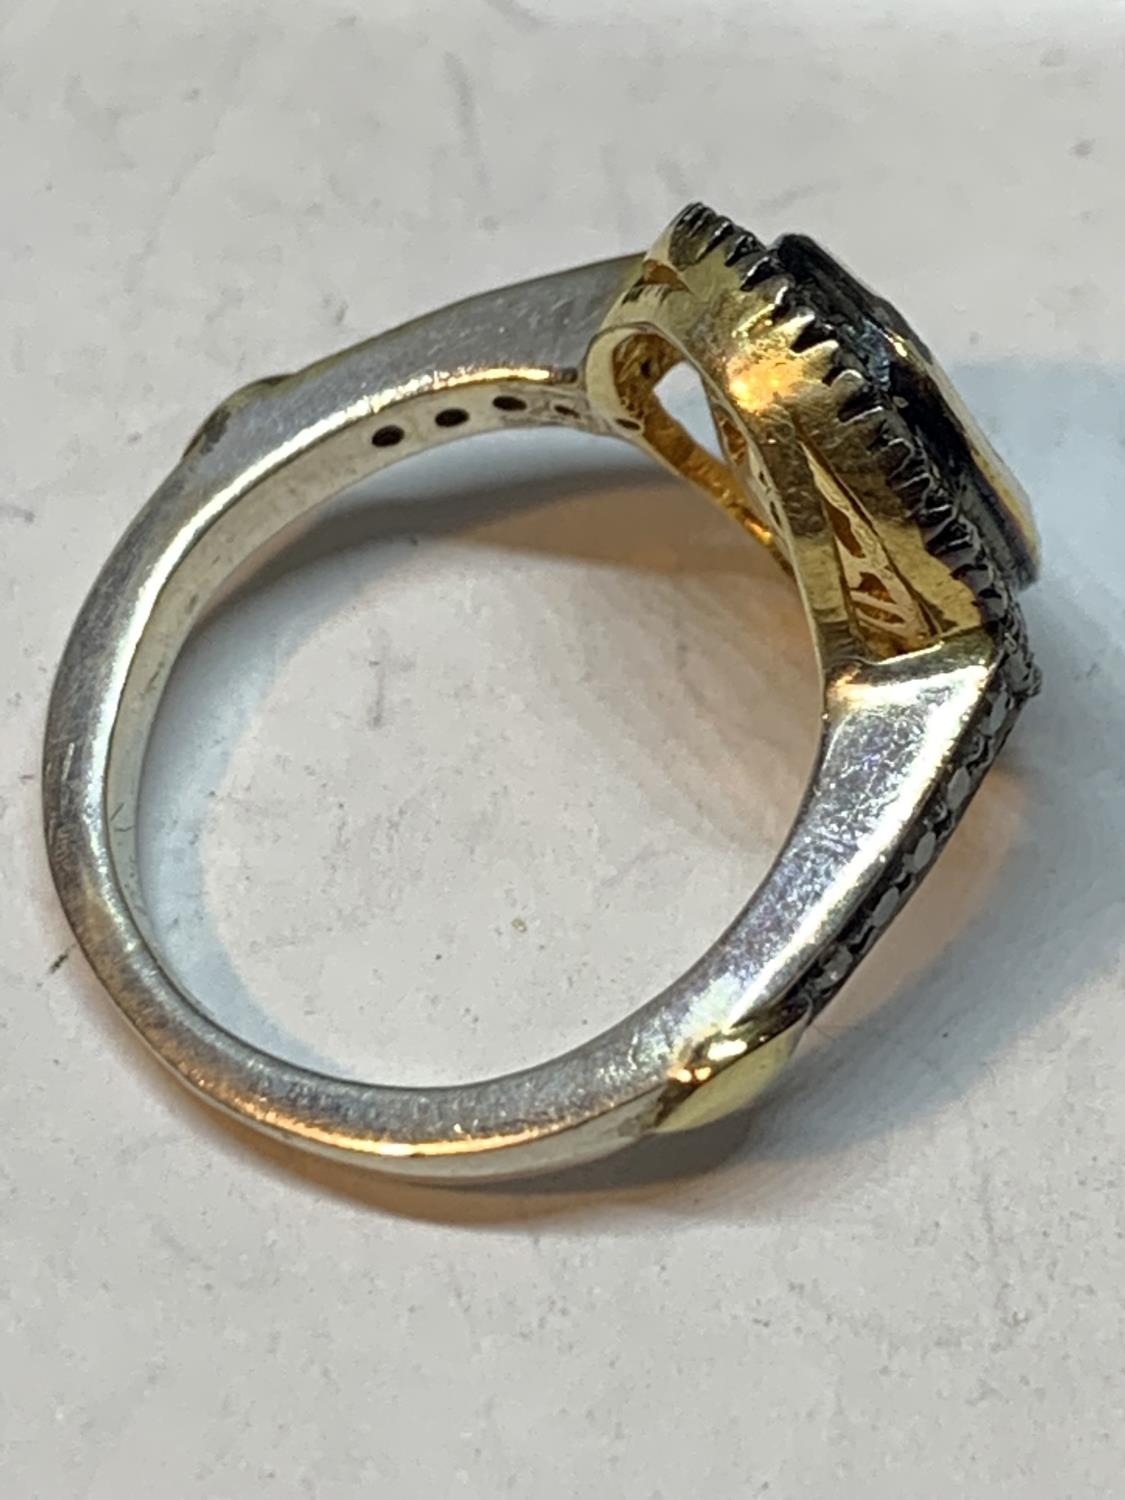 A CONTINENTAL WHITE AND YELLOW METAL RING WITH CENTRE DIAMOND AND SMALLER SURROUNDING DIAMONDS WHICH - Image 4 of 6